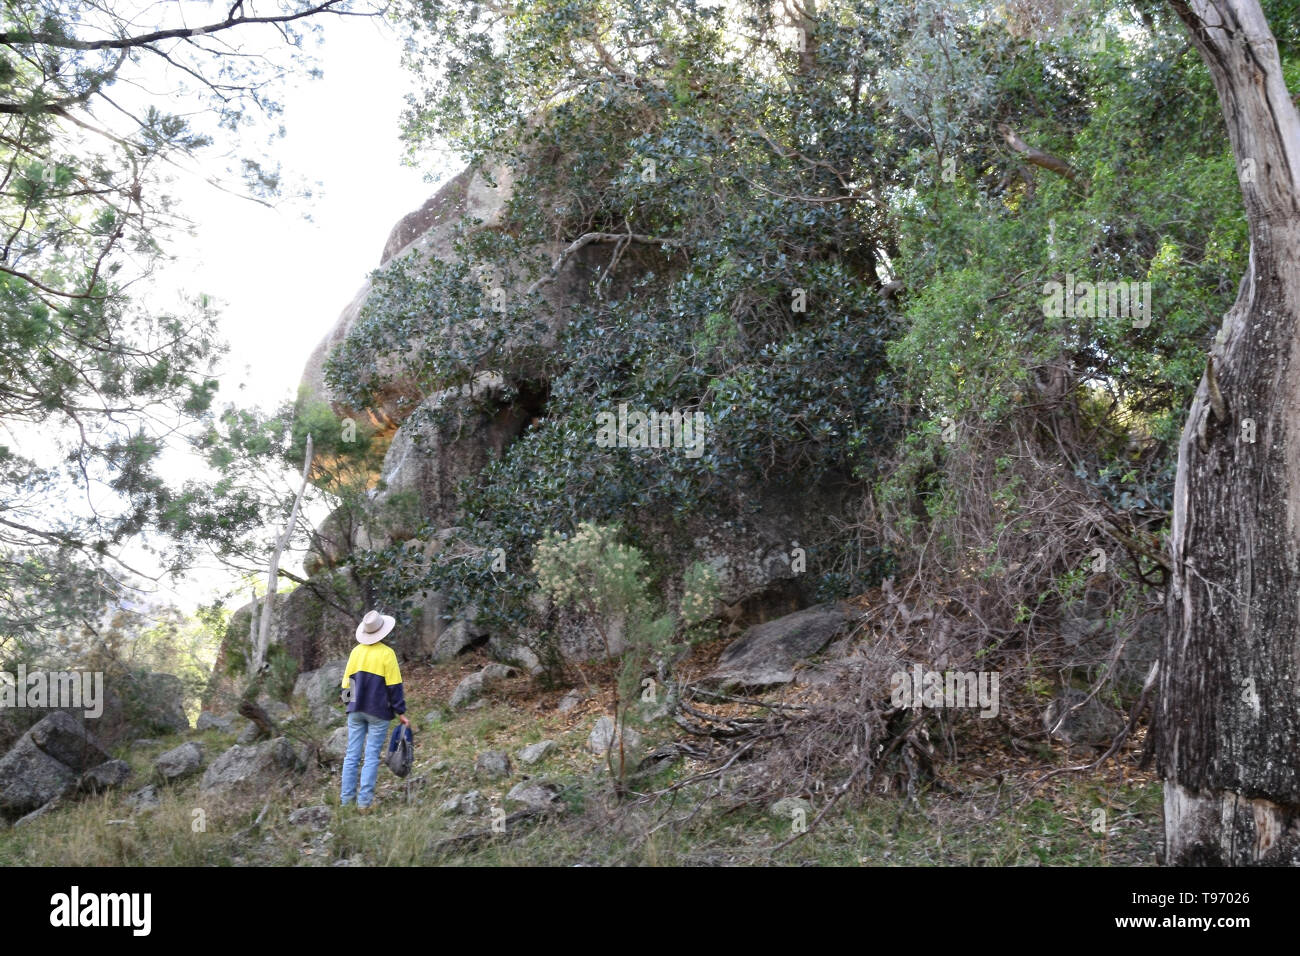 A Hiker looking at a large boulder in a temperate forest near Tamworth Australia. - Stock Image